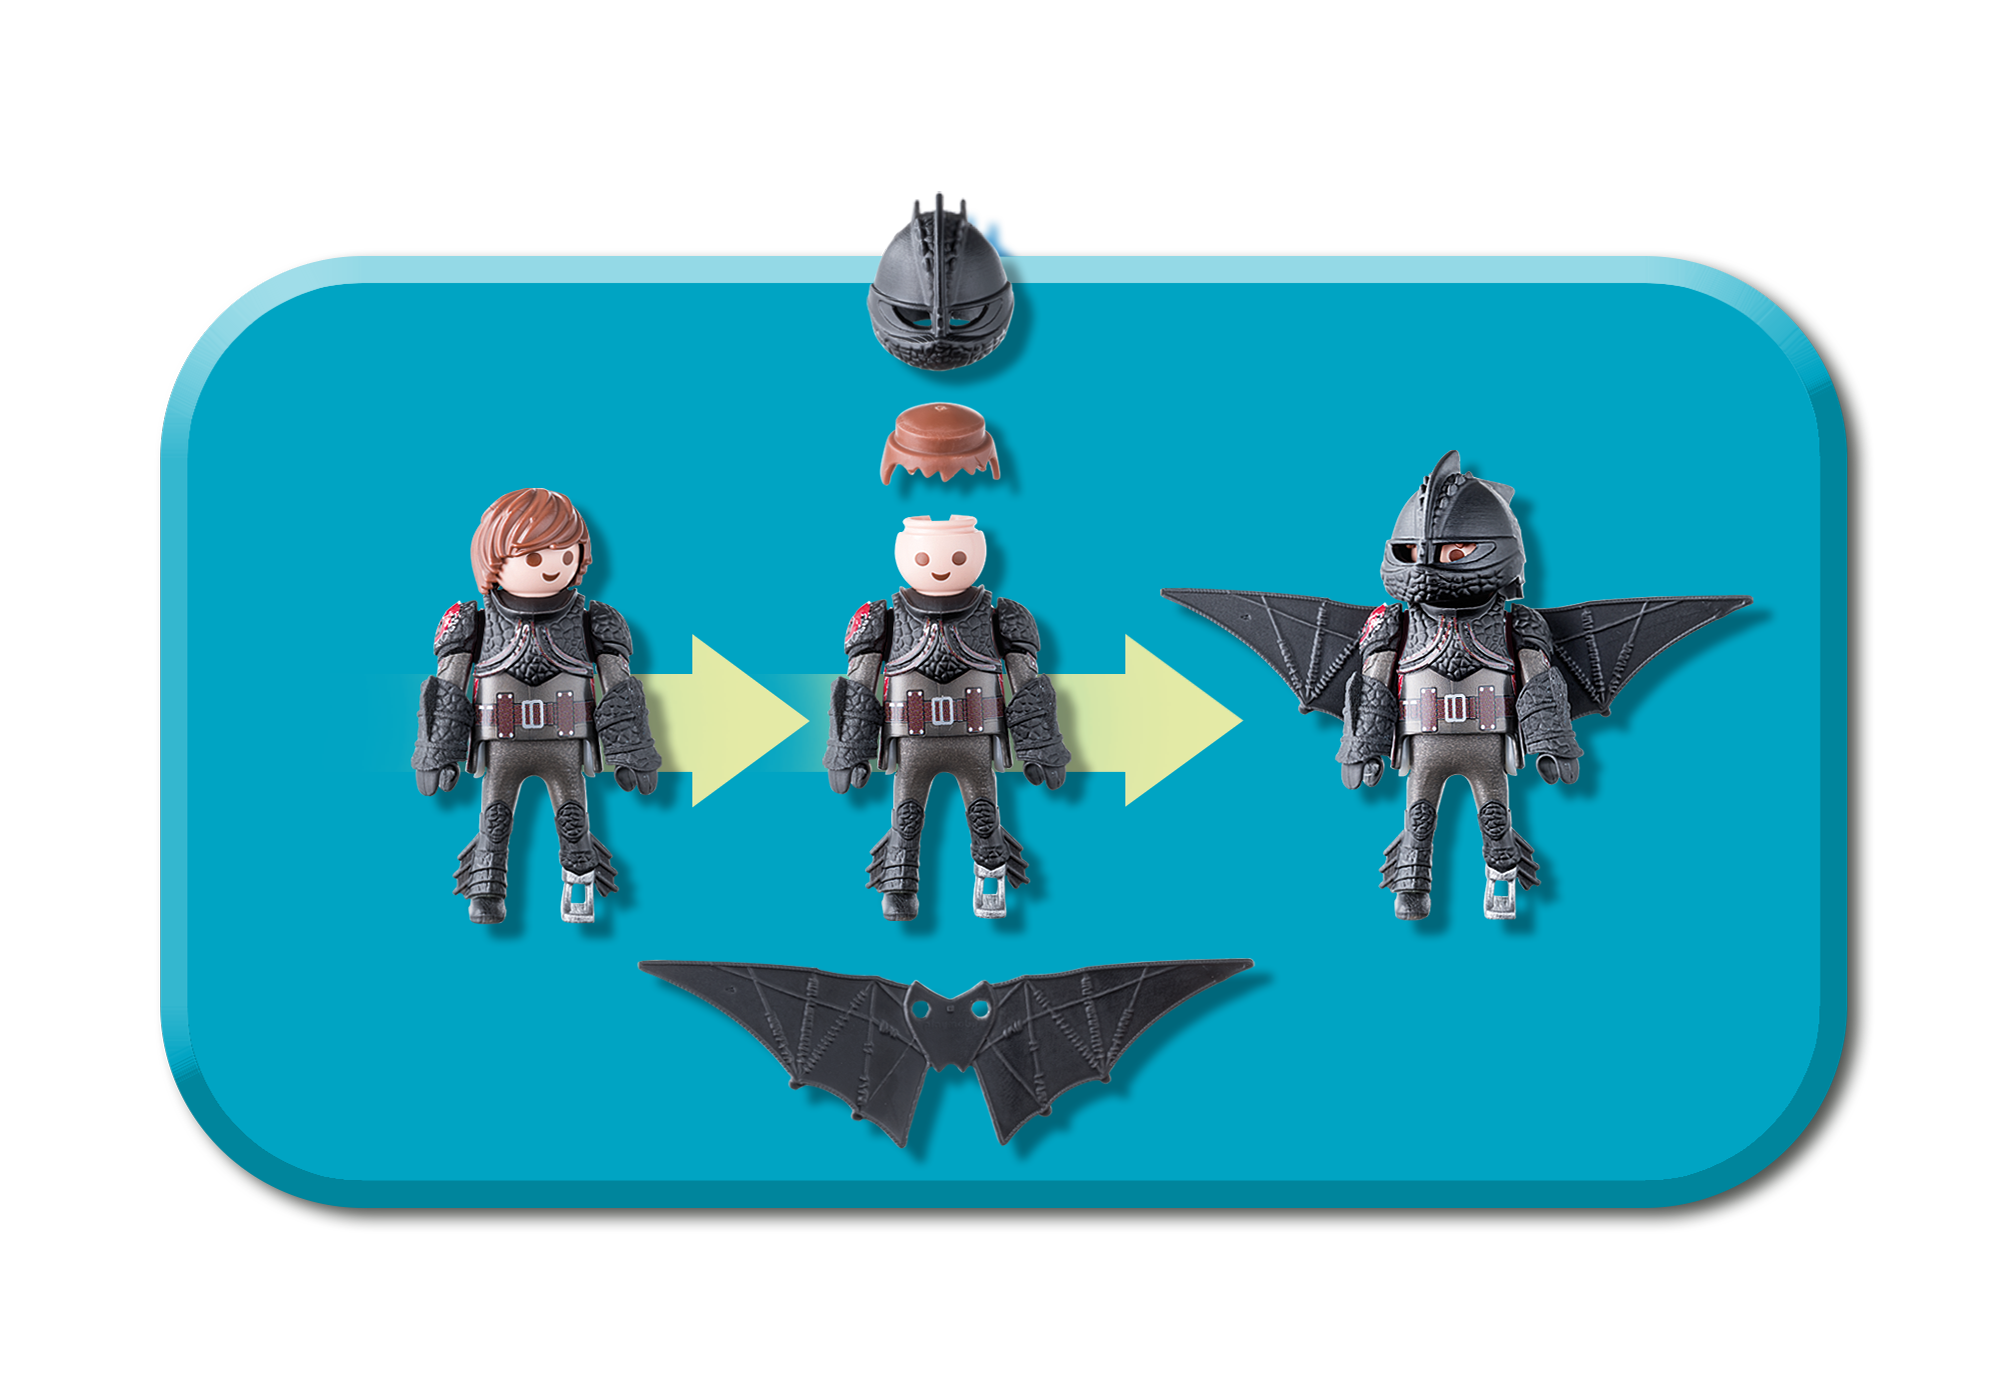 http://media.playmobil.com/i/playmobil/70037_product_extra3/Hiccup and Toothless with Baby Dragon